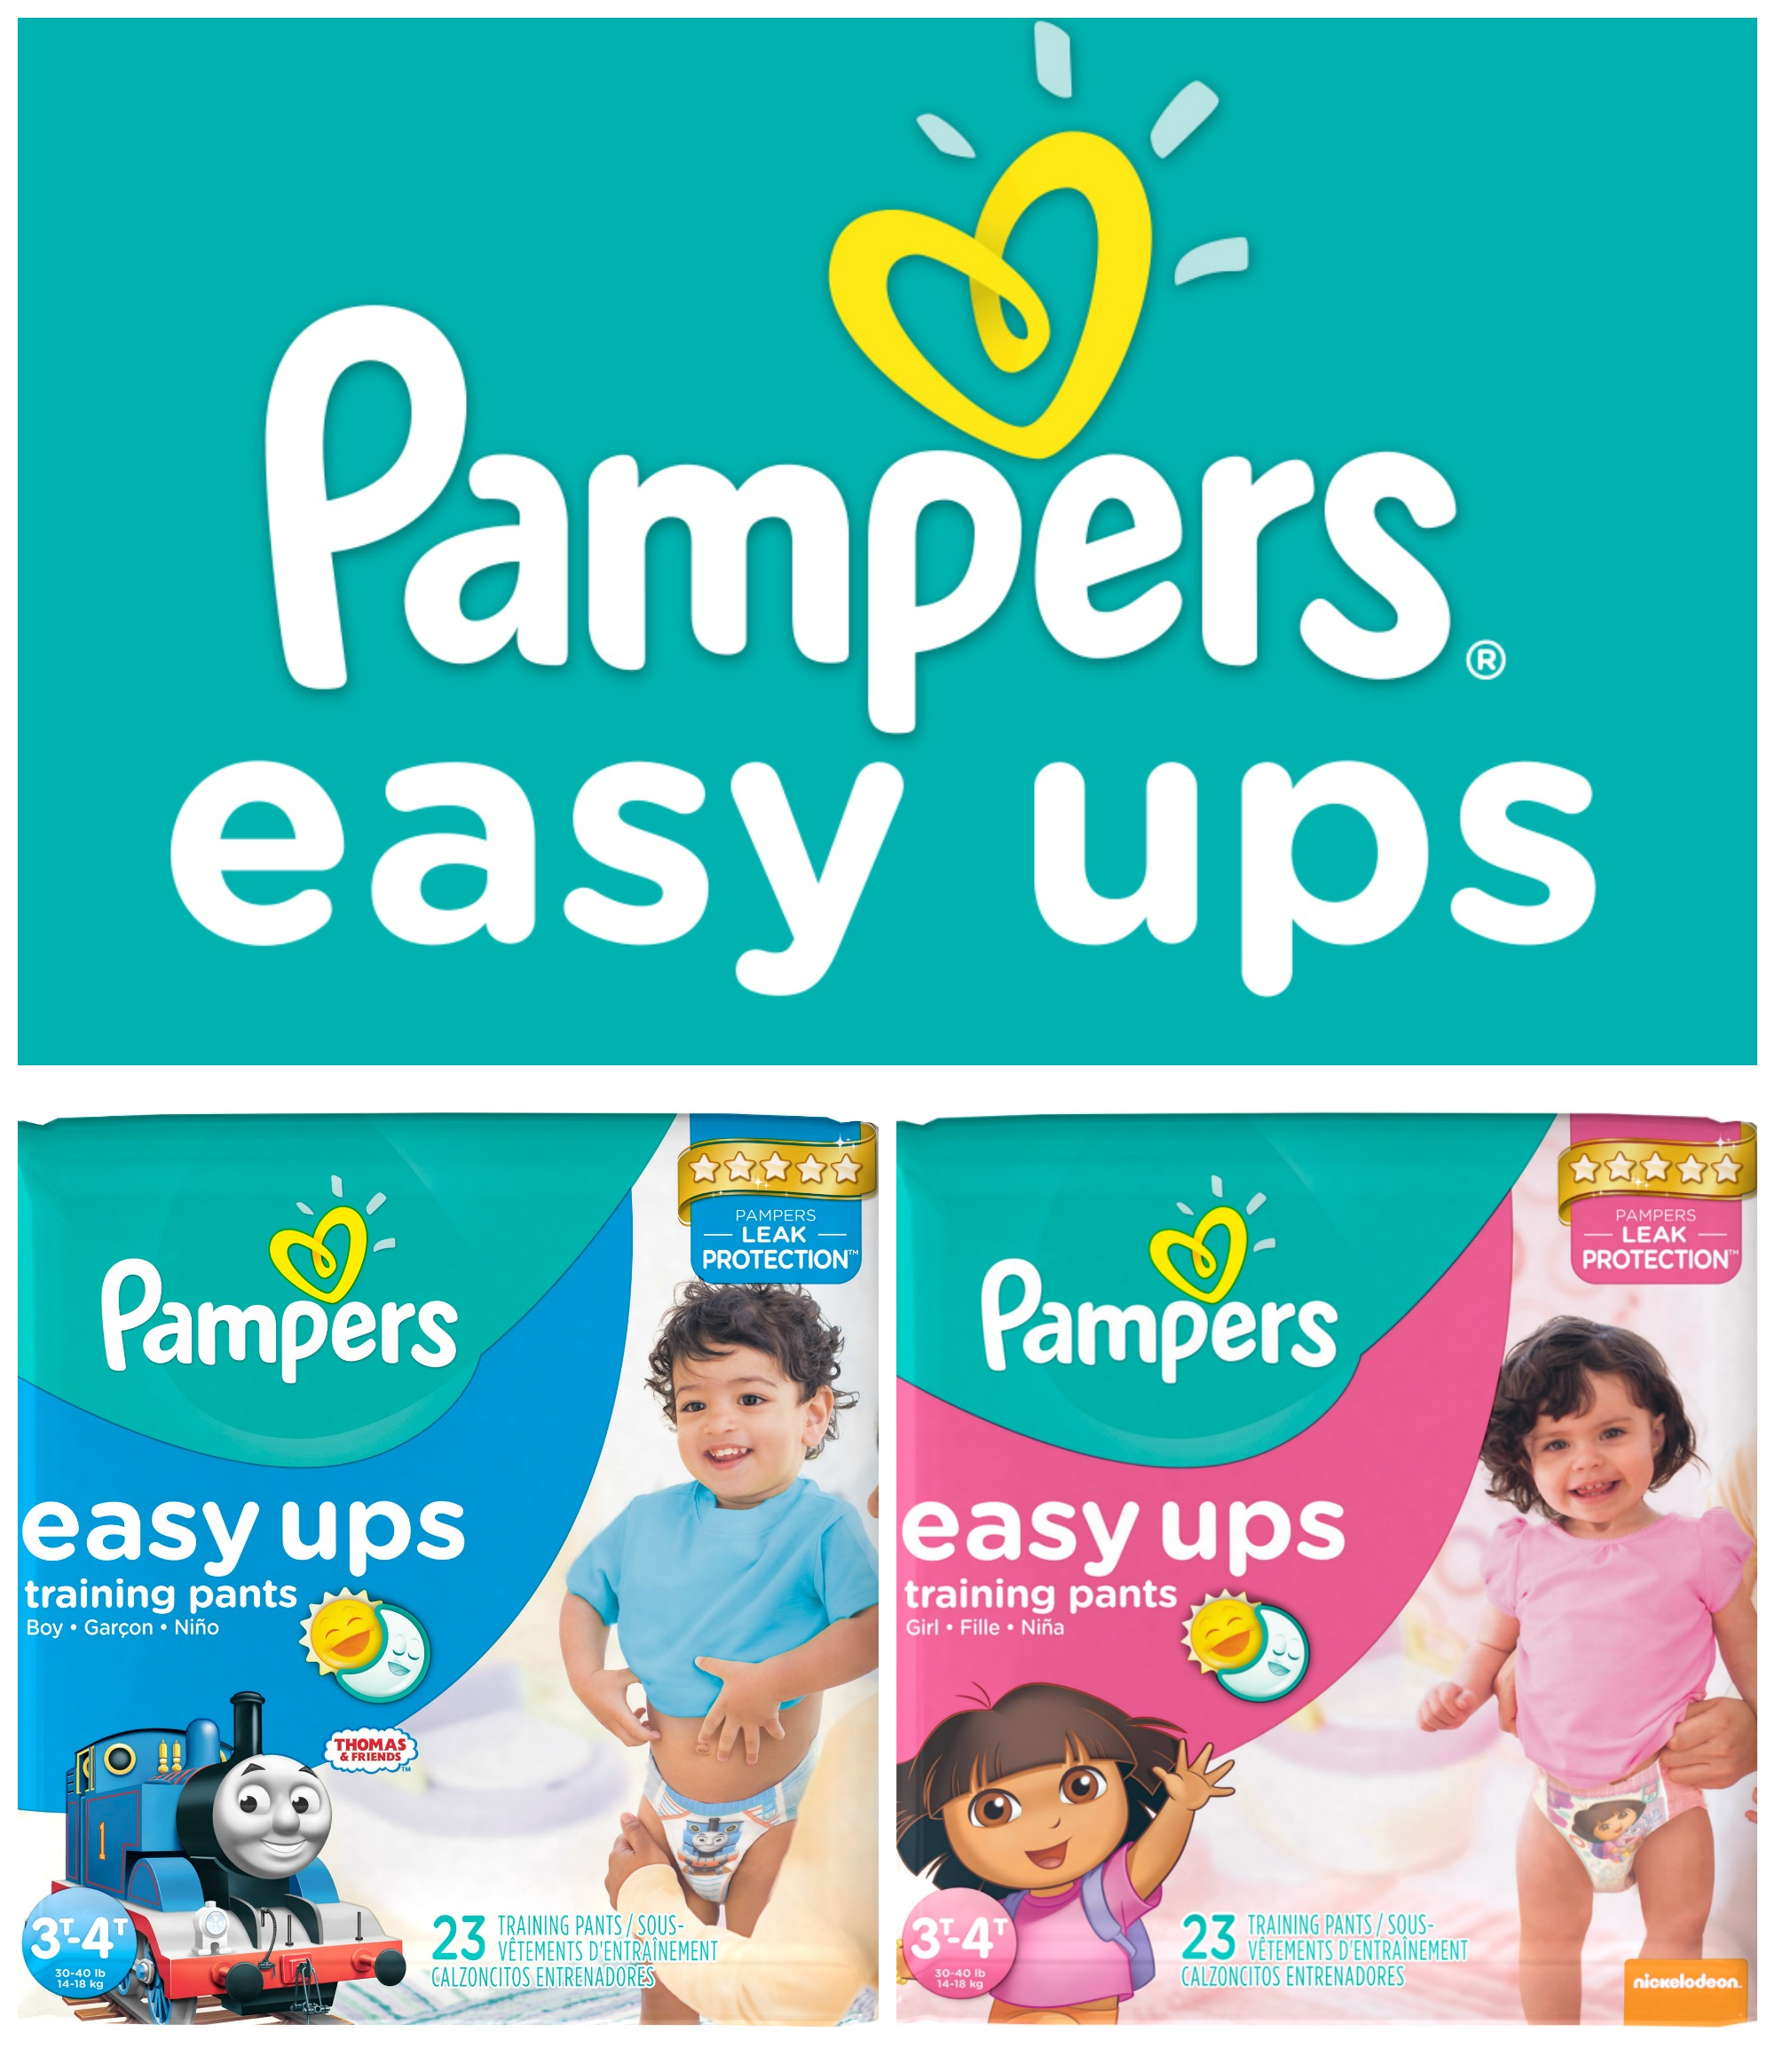 Five Simple Steps for Potty Training with Pampers Easy Ups